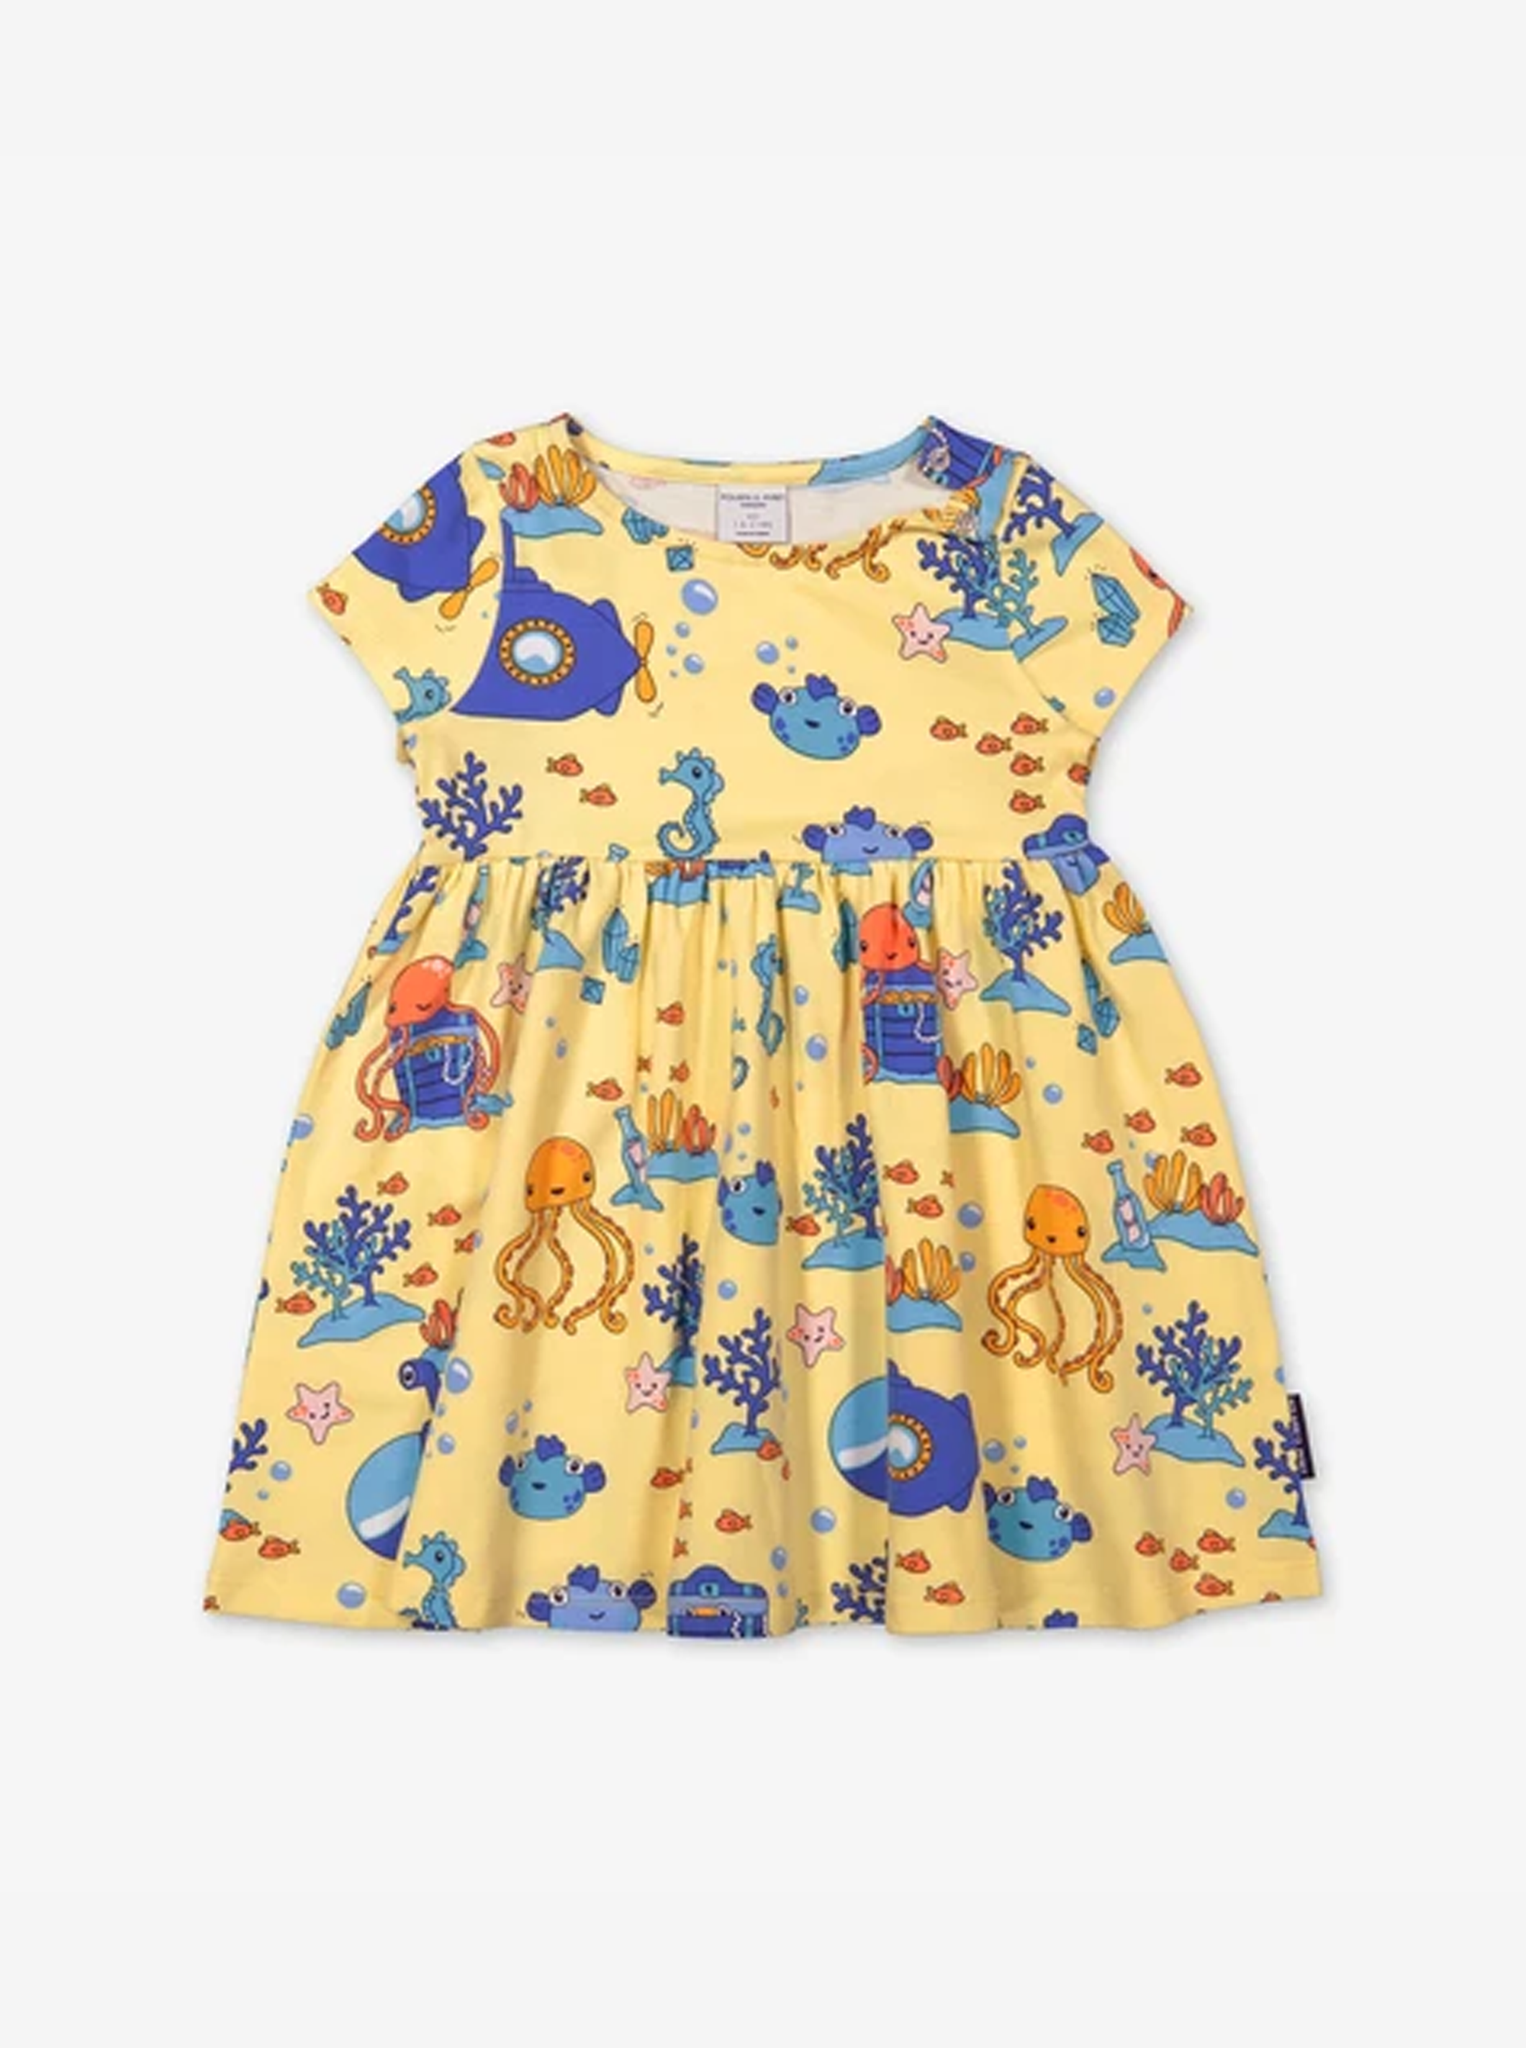 Underwater Print Kids Dress